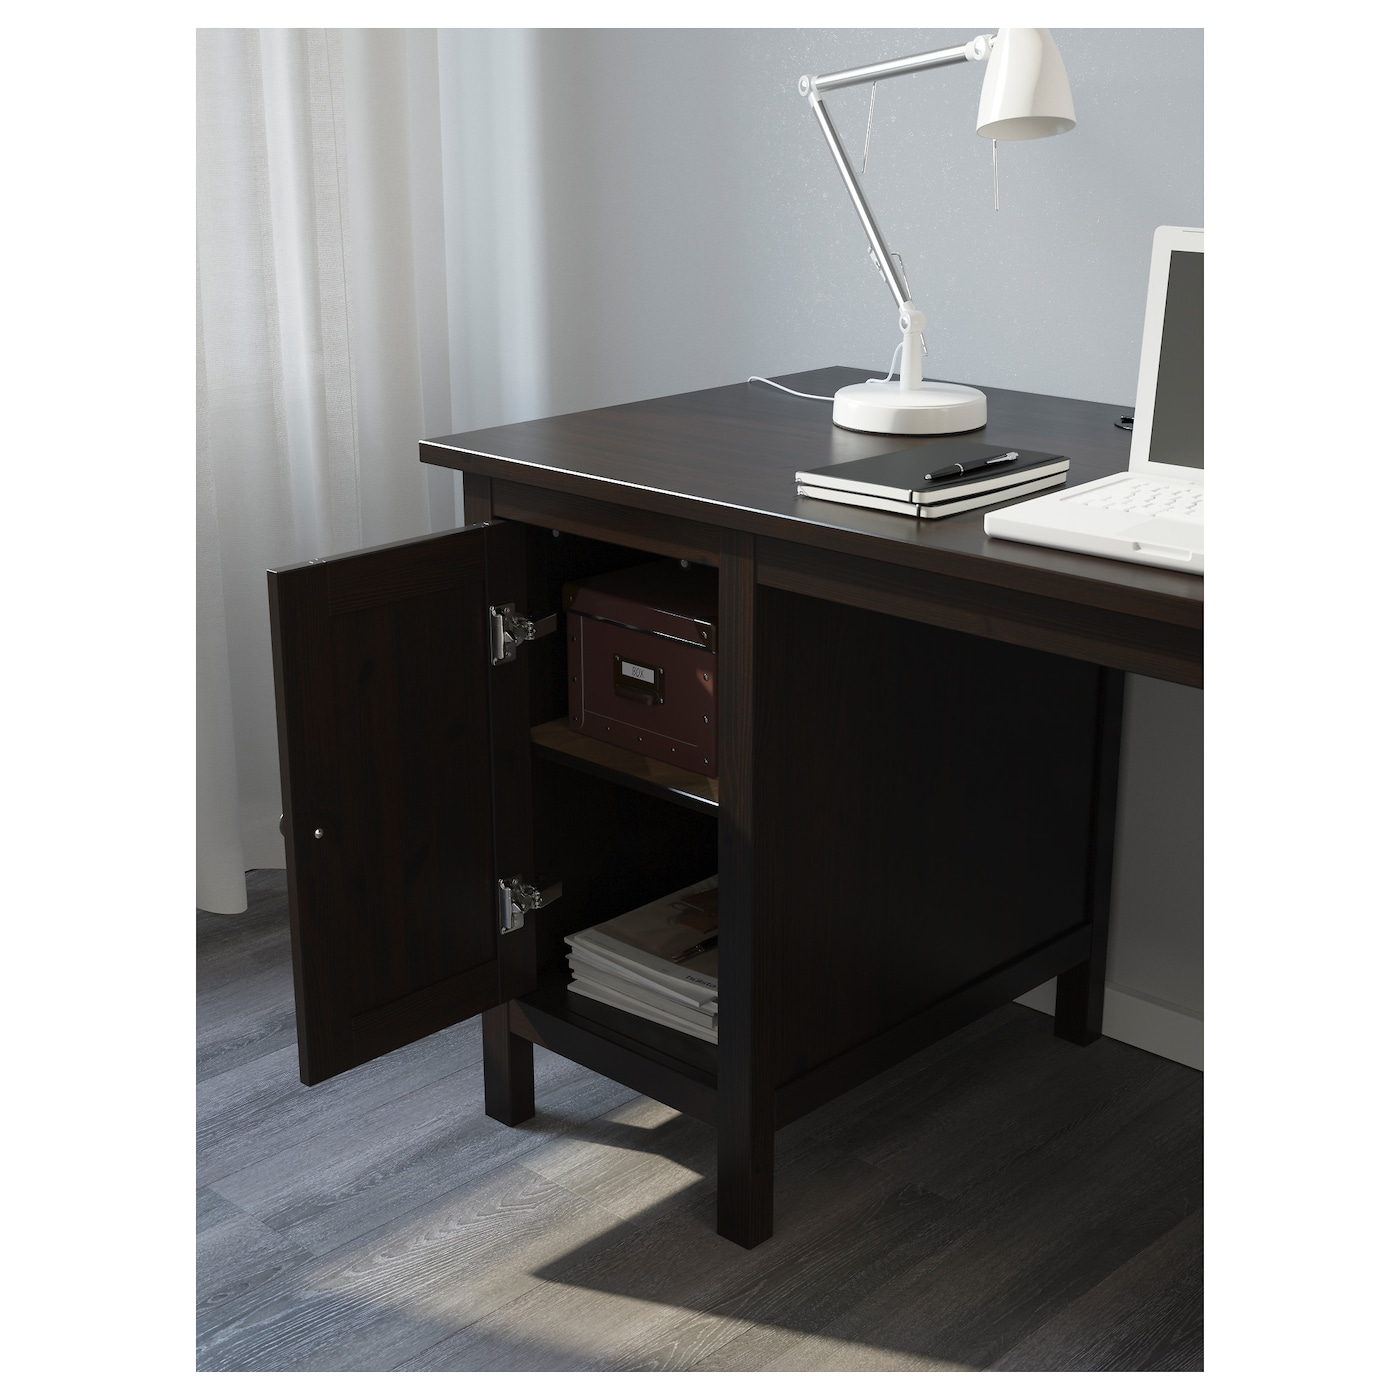 hemnes bureau brun noir 155x65 cm ikea. Black Bedroom Furniture Sets. Home Design Ideas